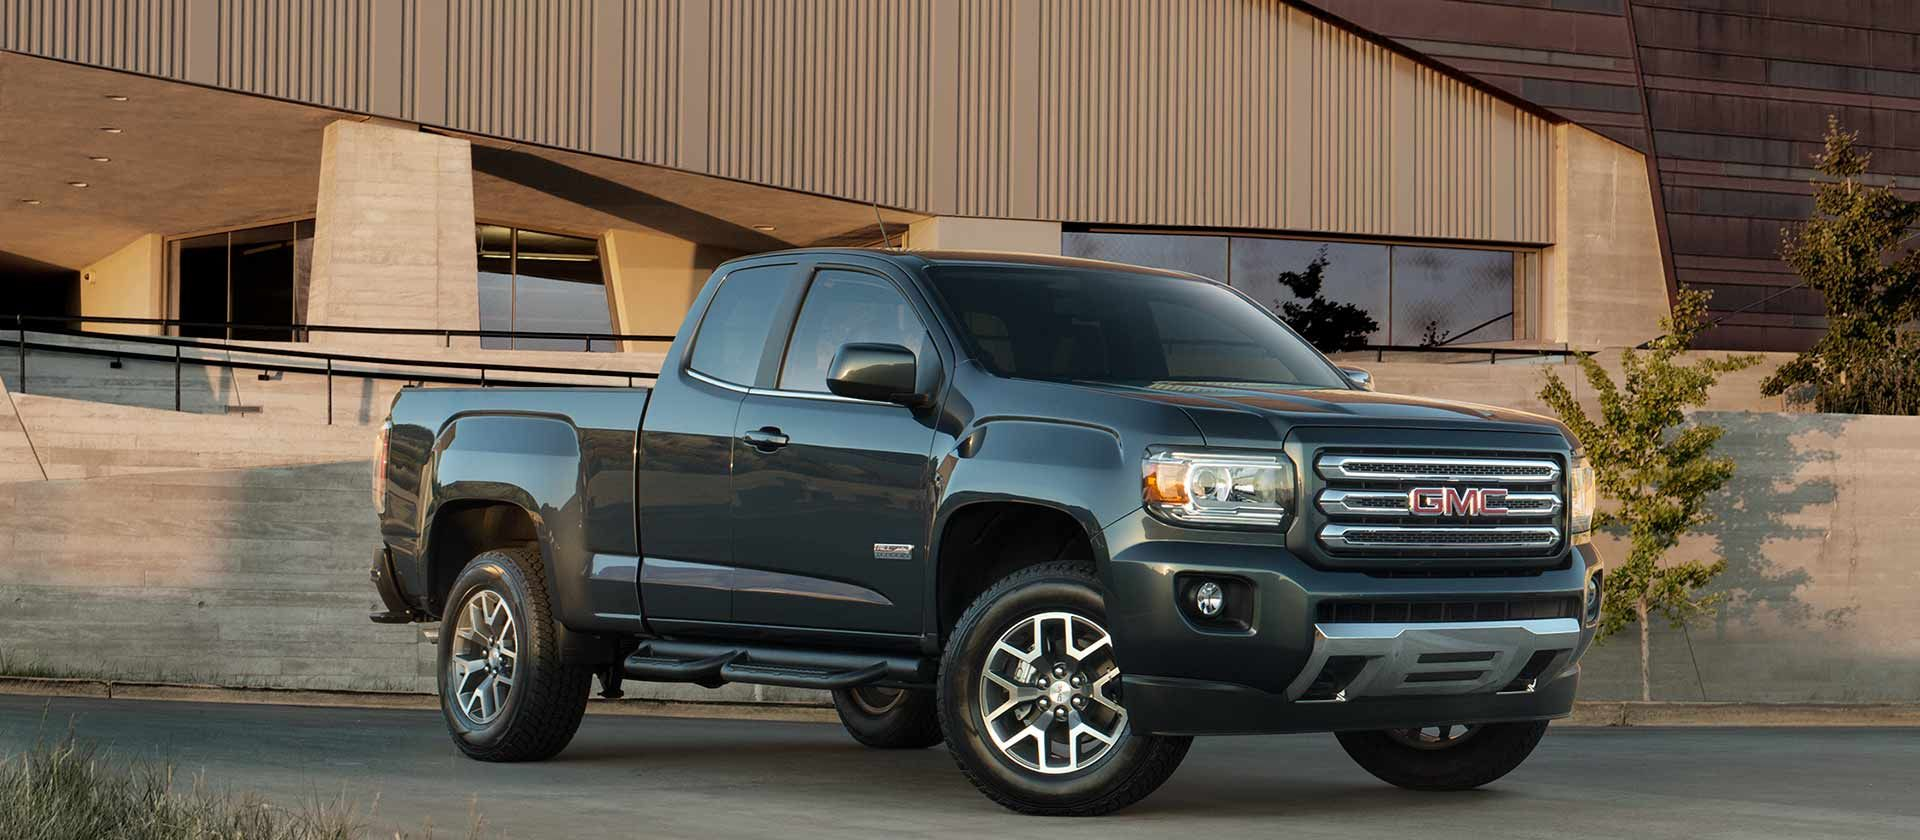 Gmc Canyon All Terrain With Images Gmc Canyon Small Pickup